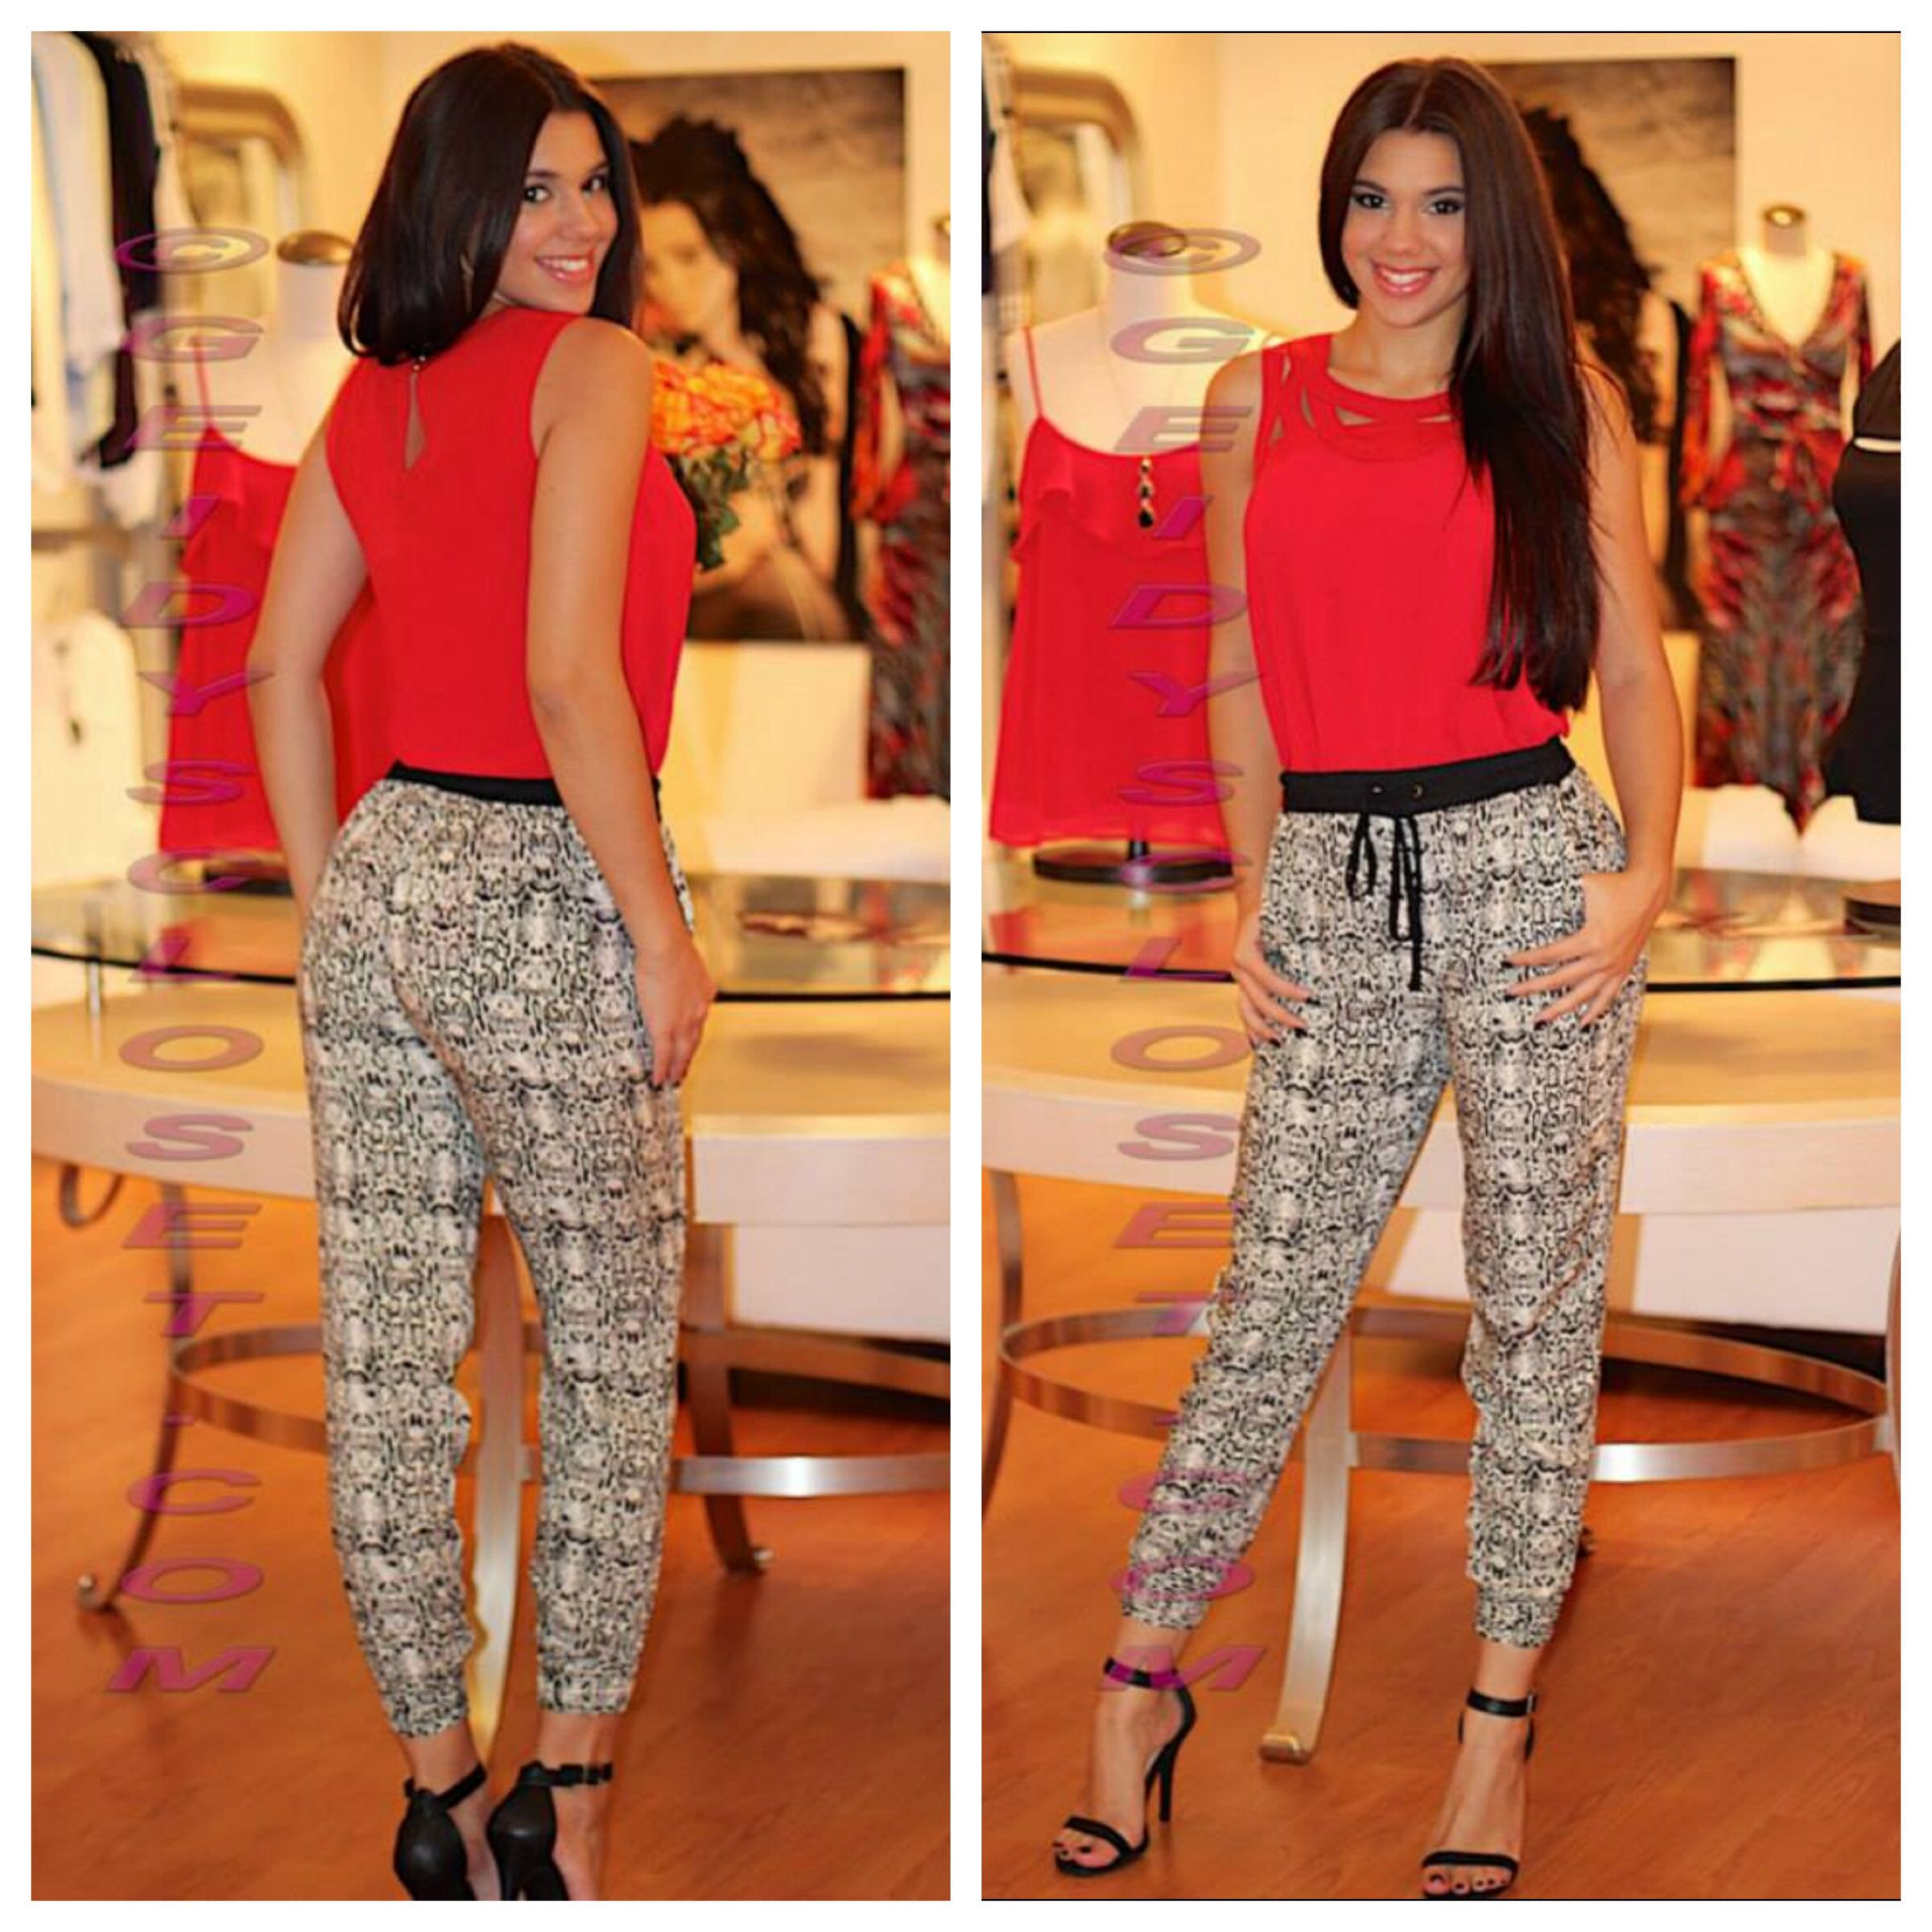 Red Top And Black And White Printed Pants Shop Online At Www Geidyscloset Com Printed Pants Style Fashion